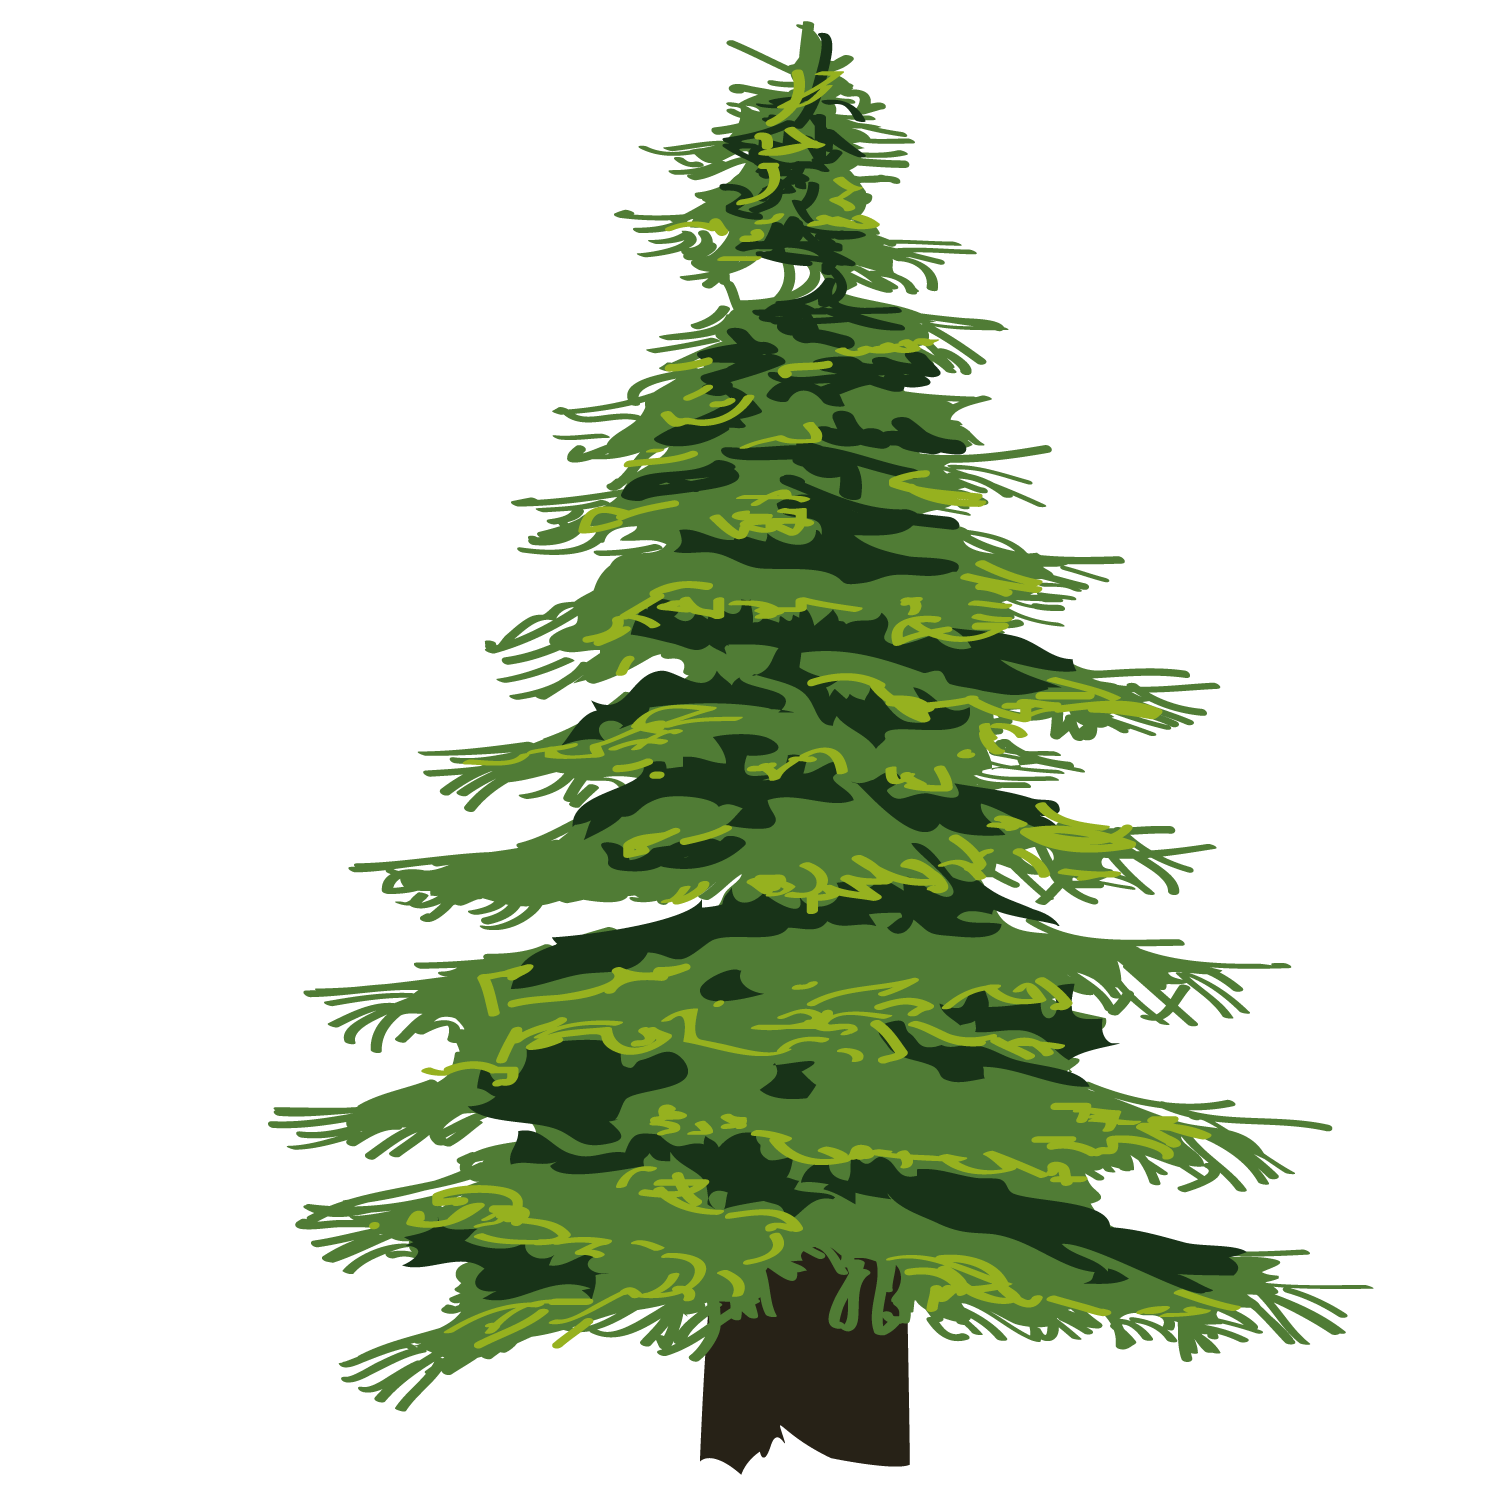 Clipart spruce tree picture library library Evergreen Tree Pine Drawing Clip art - Cartoon fine jungle 1500*1501 ... picture library library